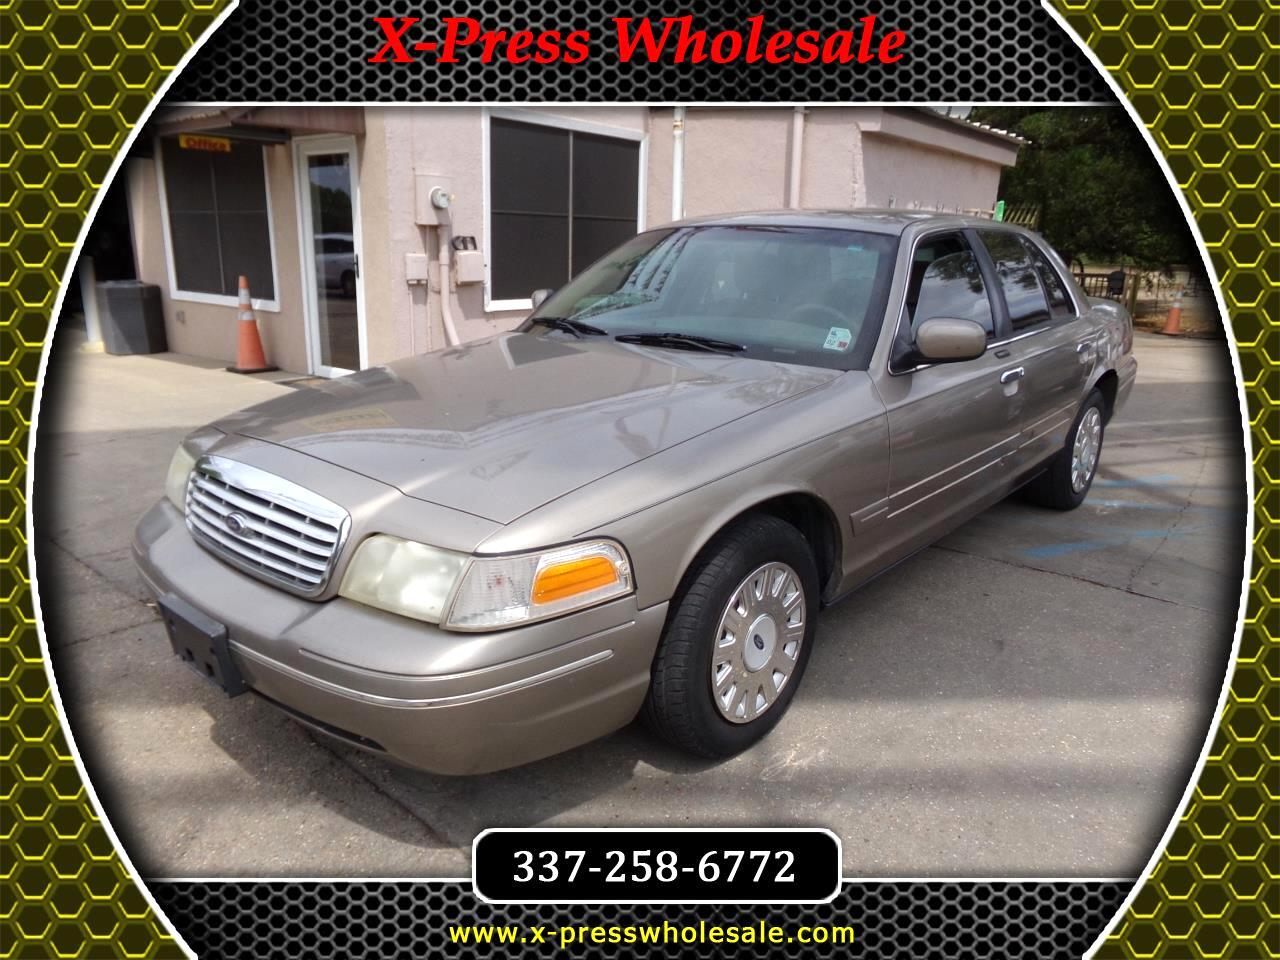 2003 Ford Crown Victoria 4dr Sdn Standard